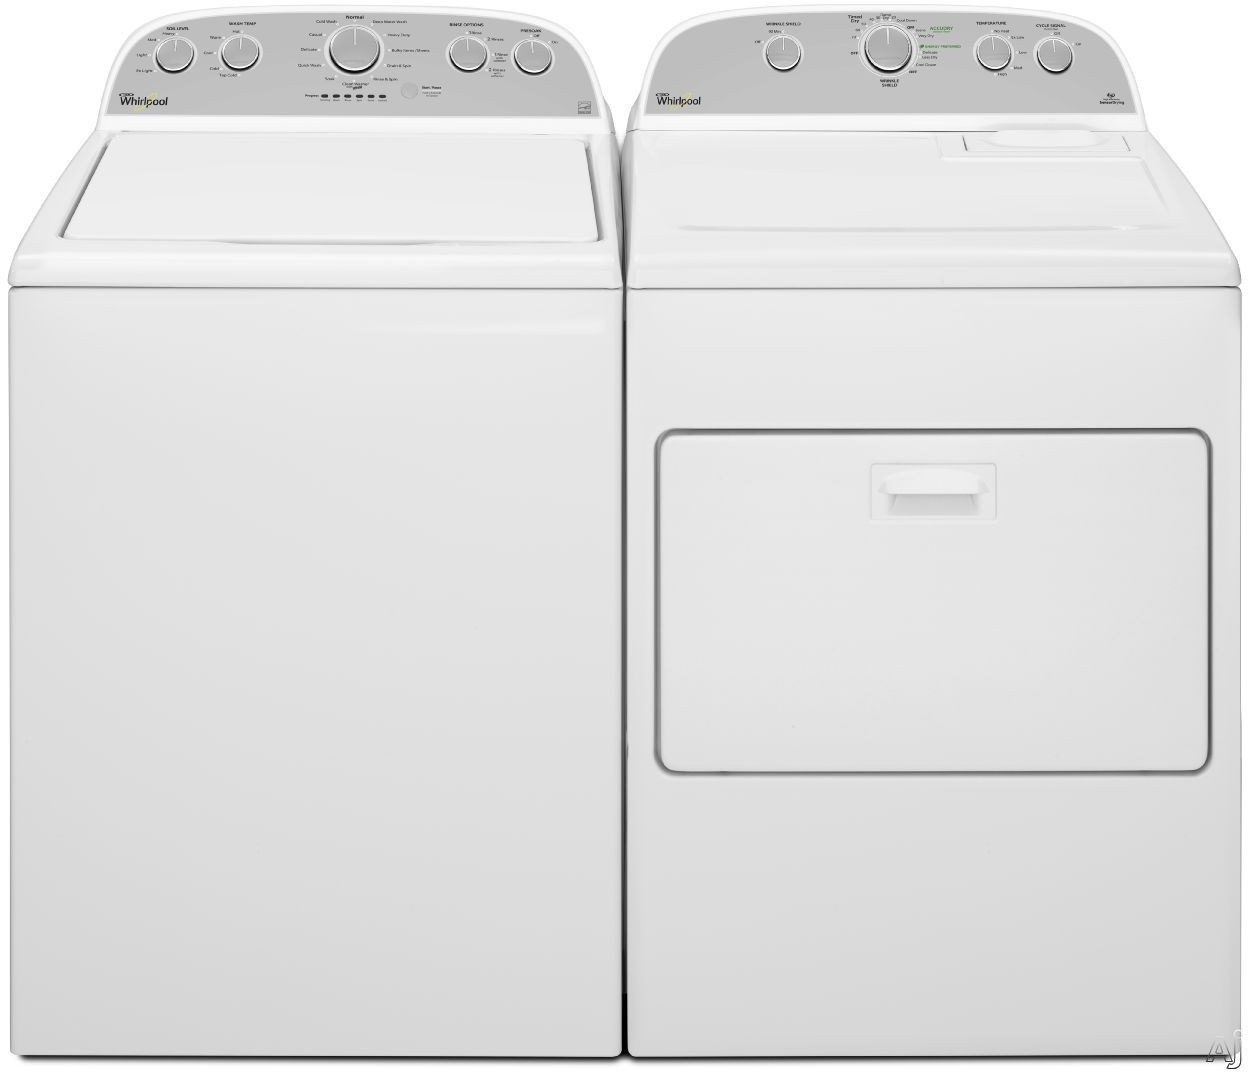 Whirlpool WPWADREW25 Side-by-Side Washer & Dryer Set with